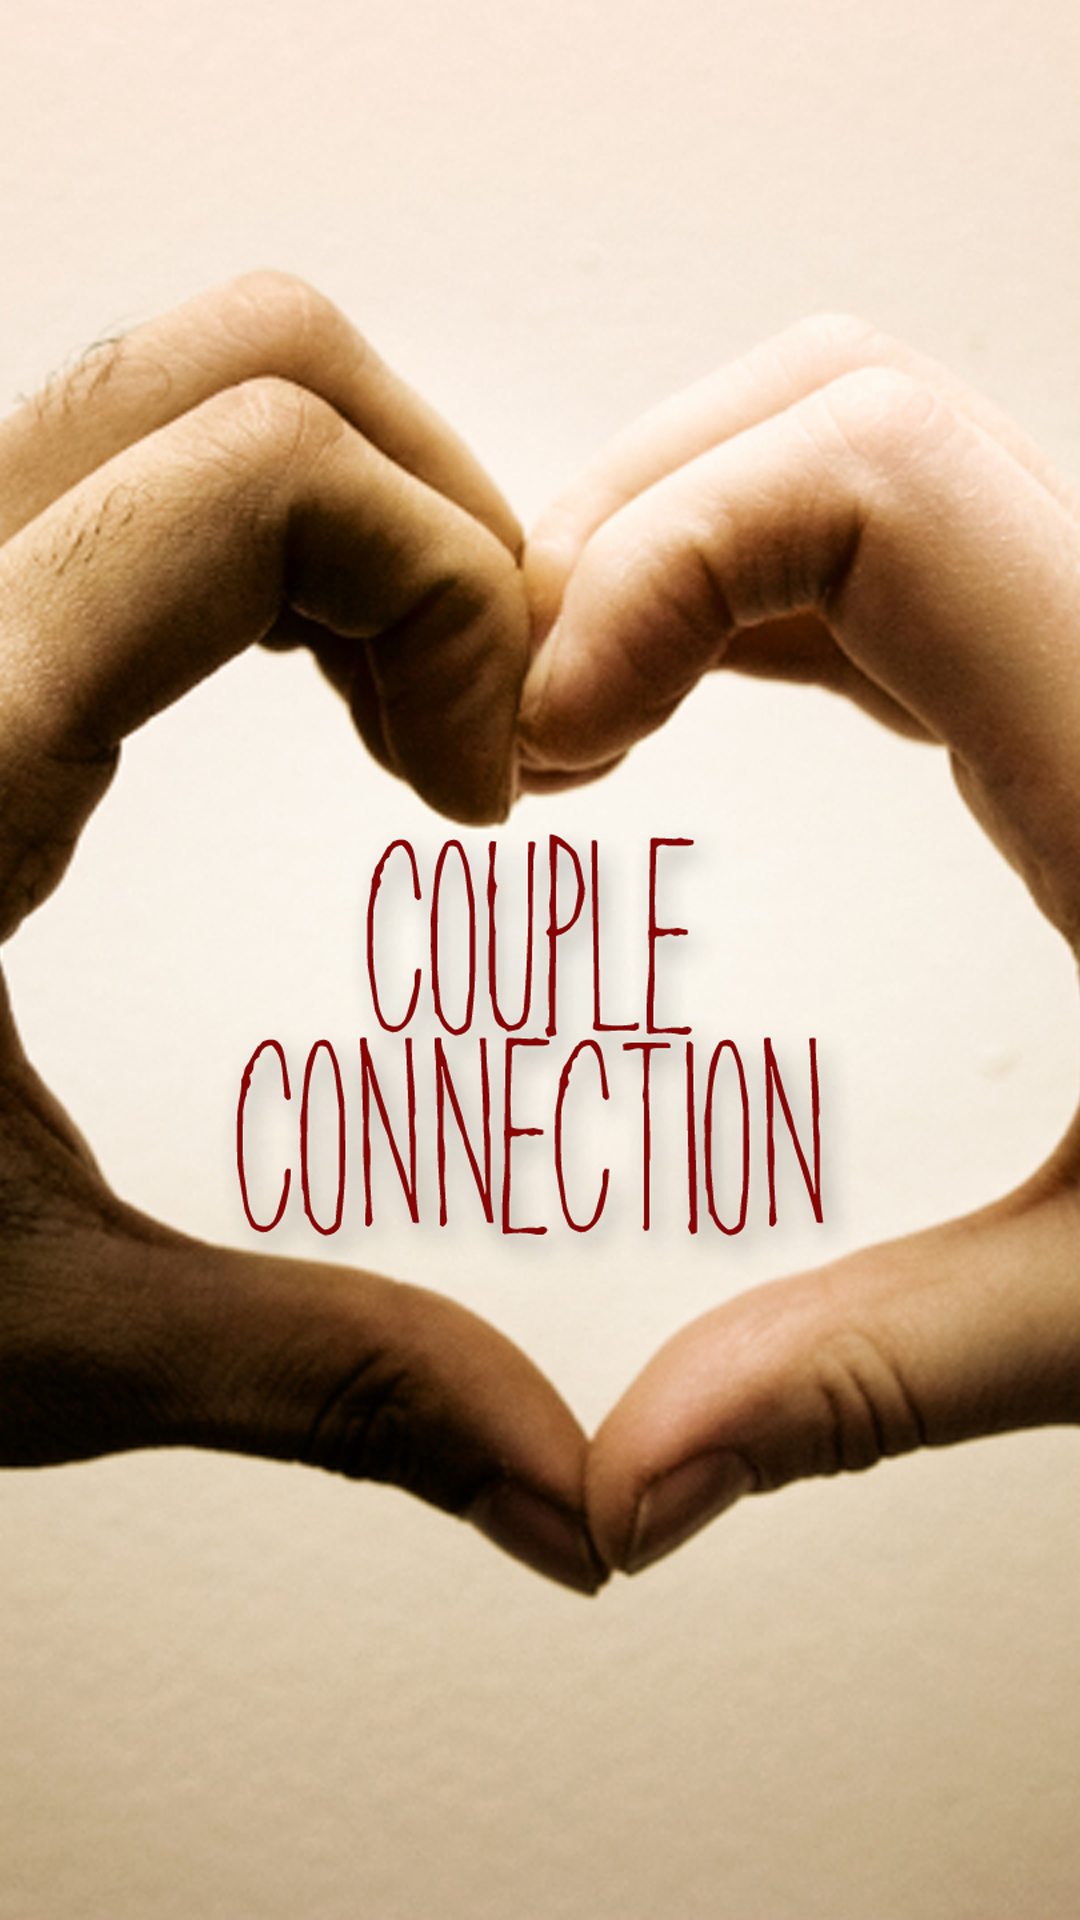 Couple Love Connection